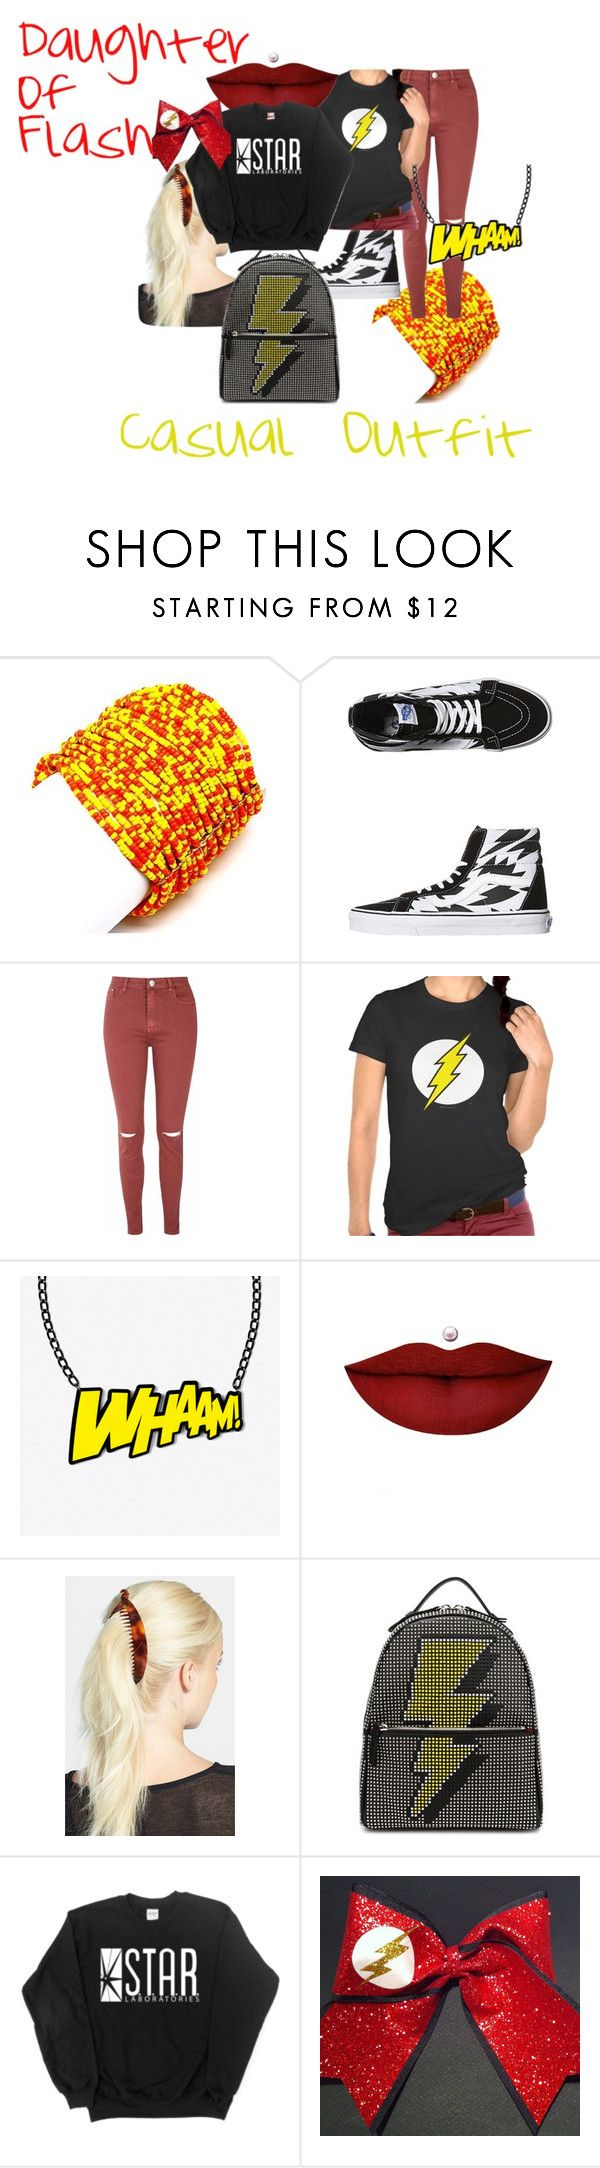 """""""Daughter of Flash Casual Outfit"""" by firegirlx48 ❤ liked on Polyvore featuring moda, Pink Mascara, Vans, Glamorous, Anastasia Beverly Hills, France Luxe y Les Petits Joueurs"""